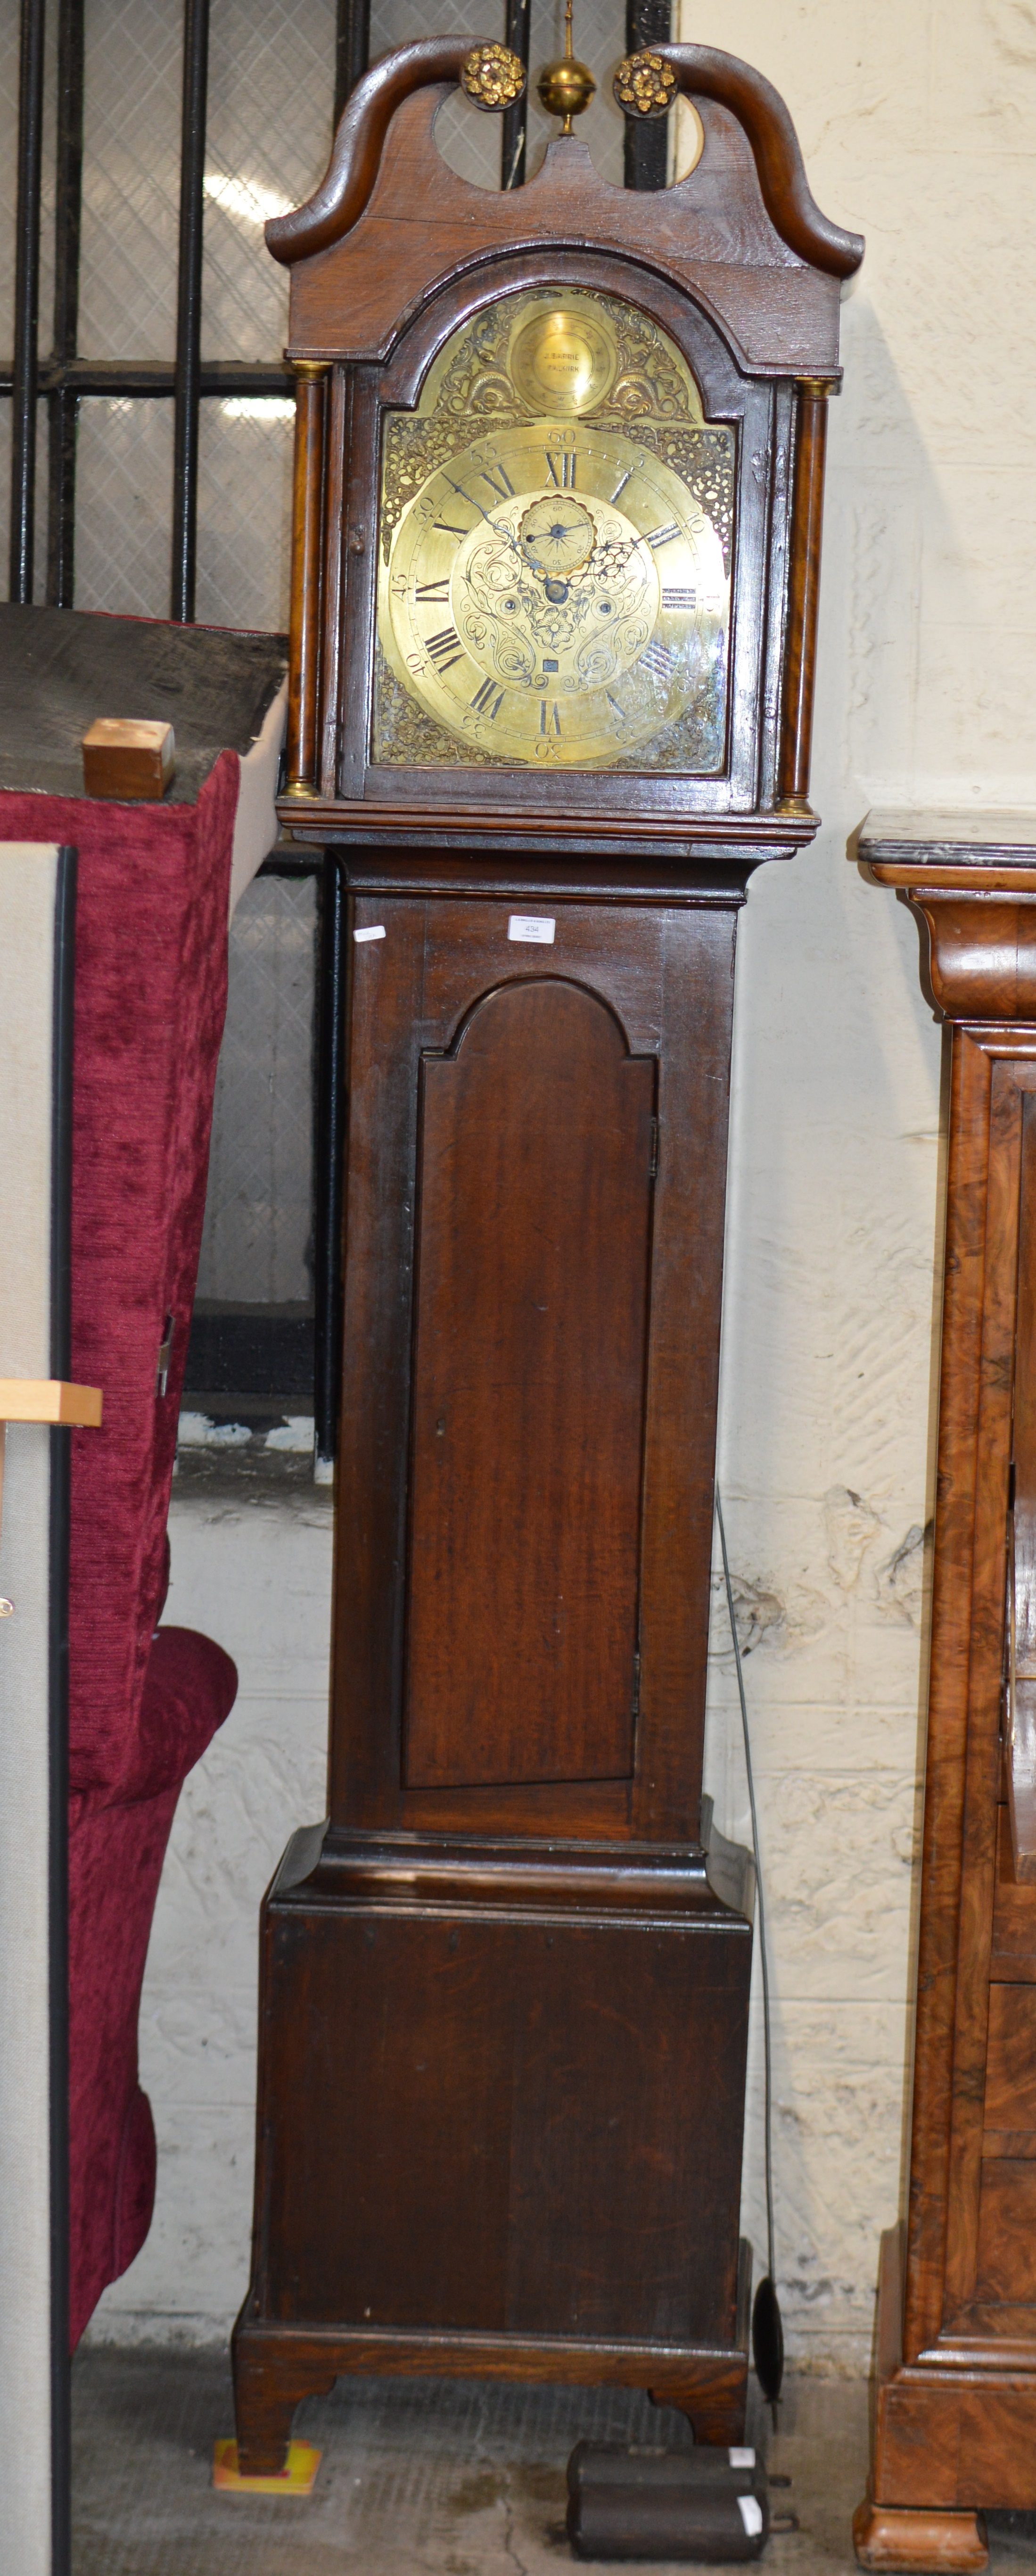 Lot 434 - MAHOGANY CASED GRANDFATHER CLOCK WITH BRASS DIAL BY J. BARRIE, FALKIRK, WITH PENDULUM & WEIGHTS